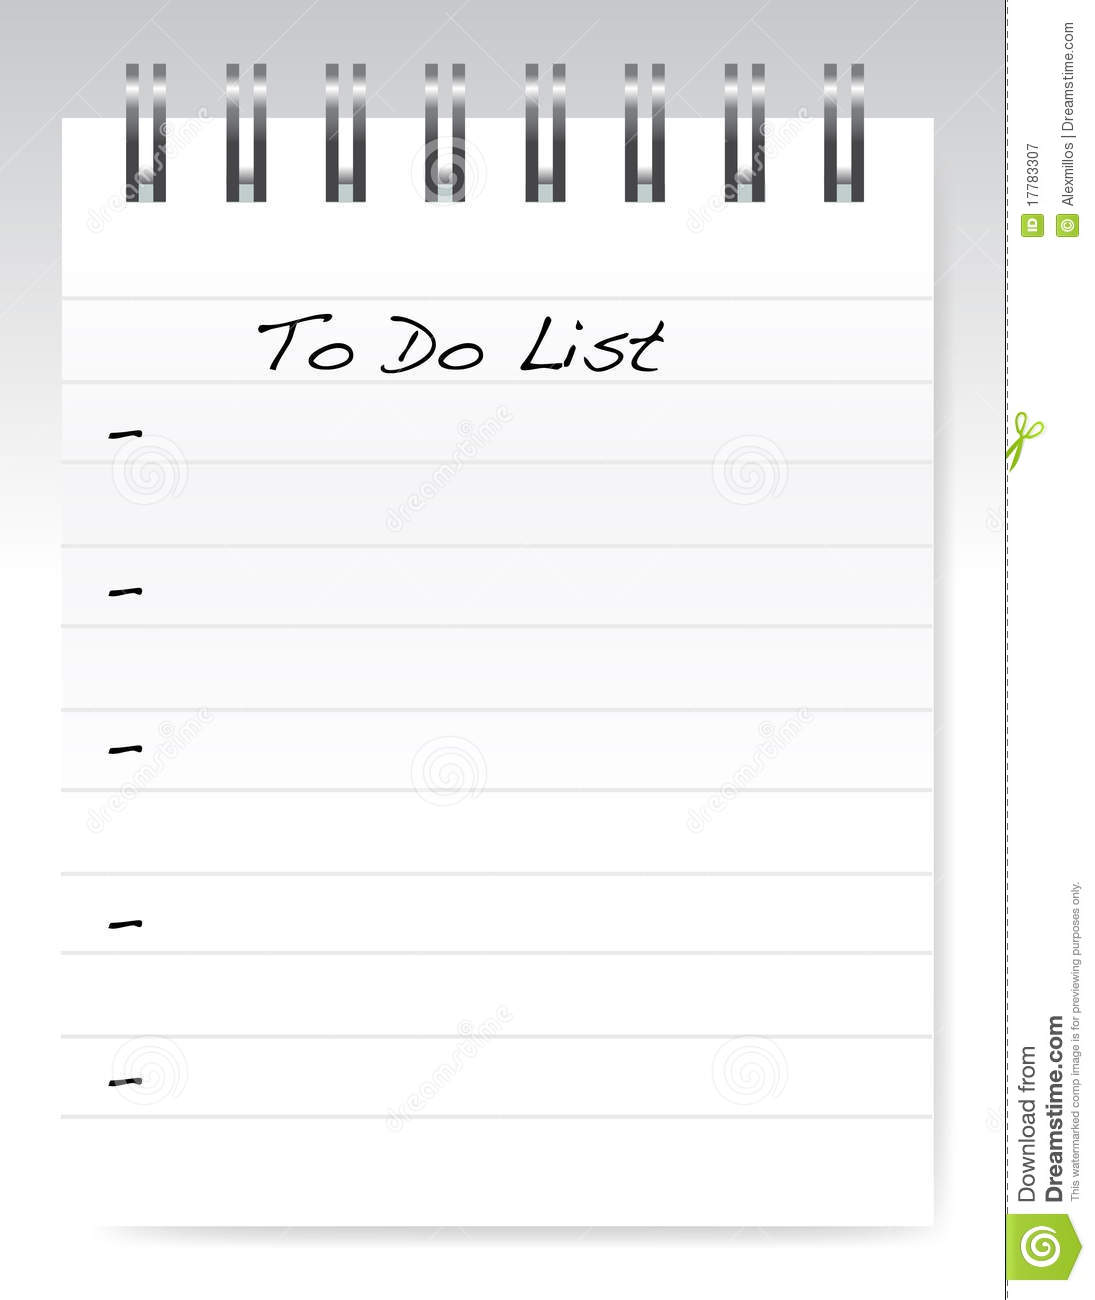 To Do List Royalty Free Stock Photography Image 17783307